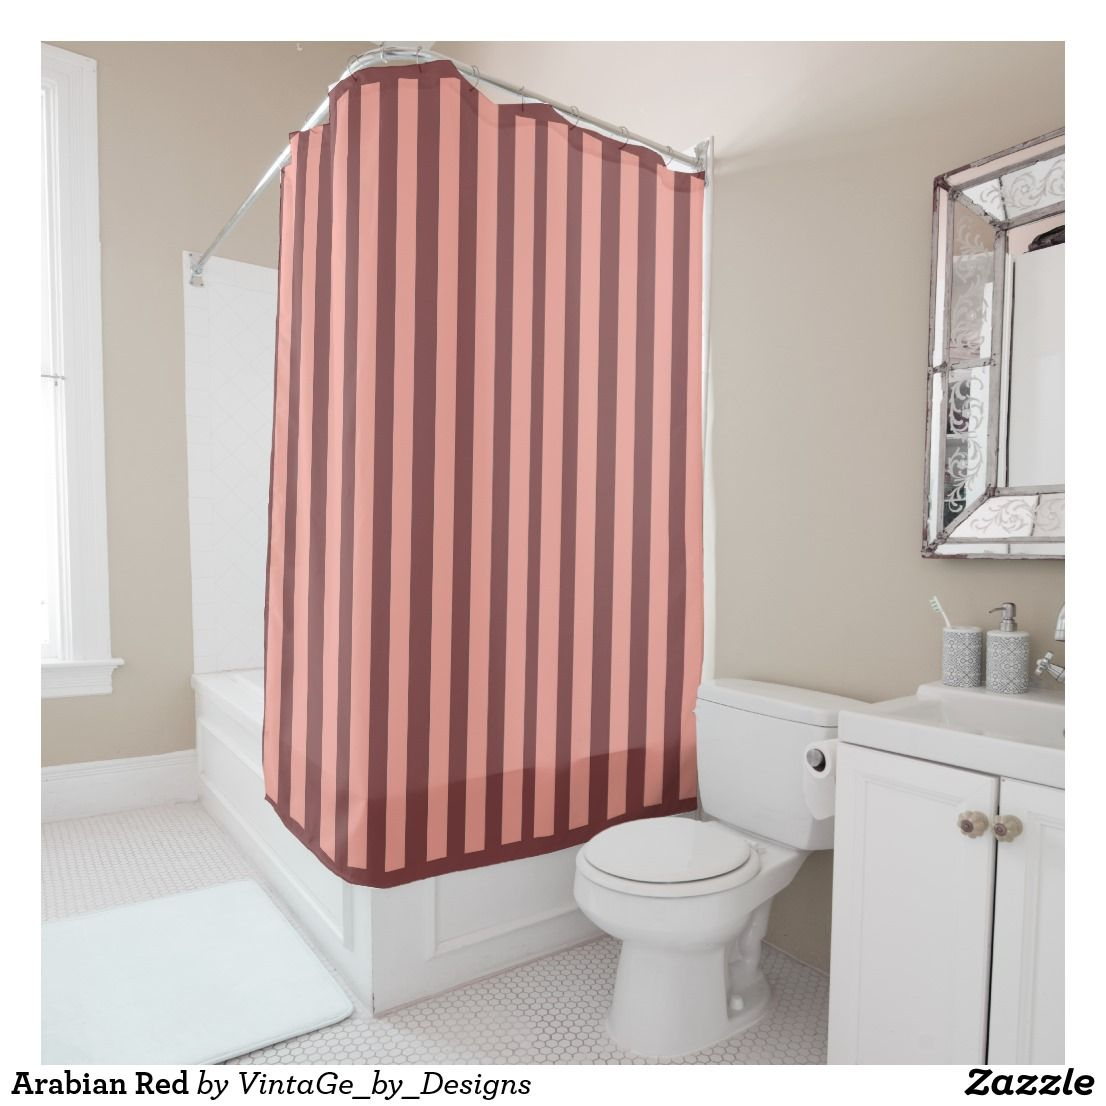 Arabian Red Shower Curtain Zazzle Com Striped Shower Curtains